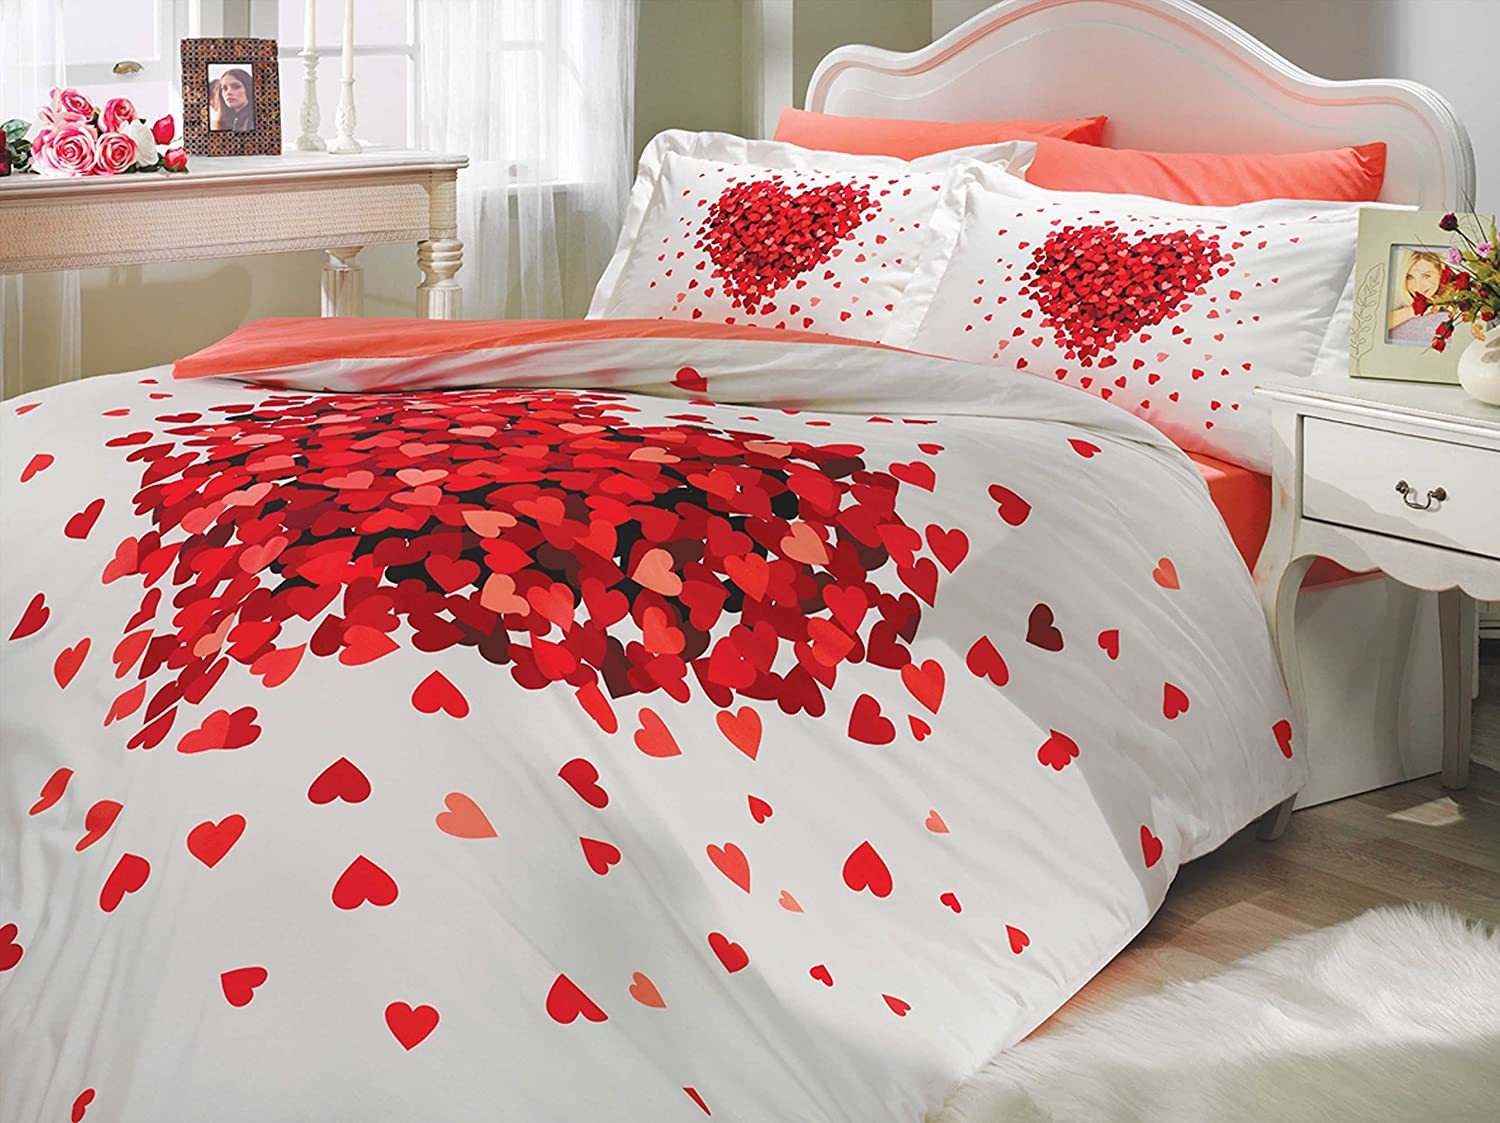 (TWIN / SINGLE, Multi 7) 3 Pieces Twin Duvet Cover Set by LaModaHome, Heart Shaped with Hearts Prints Romantic Design on Quilt Cover and Pillow Cases, 100% Cotton Ranforce Fabric Bedding Set, (Twin Size), Red White B01N0IIO79 ツイン|マルチ13 マルチ13 ツイン